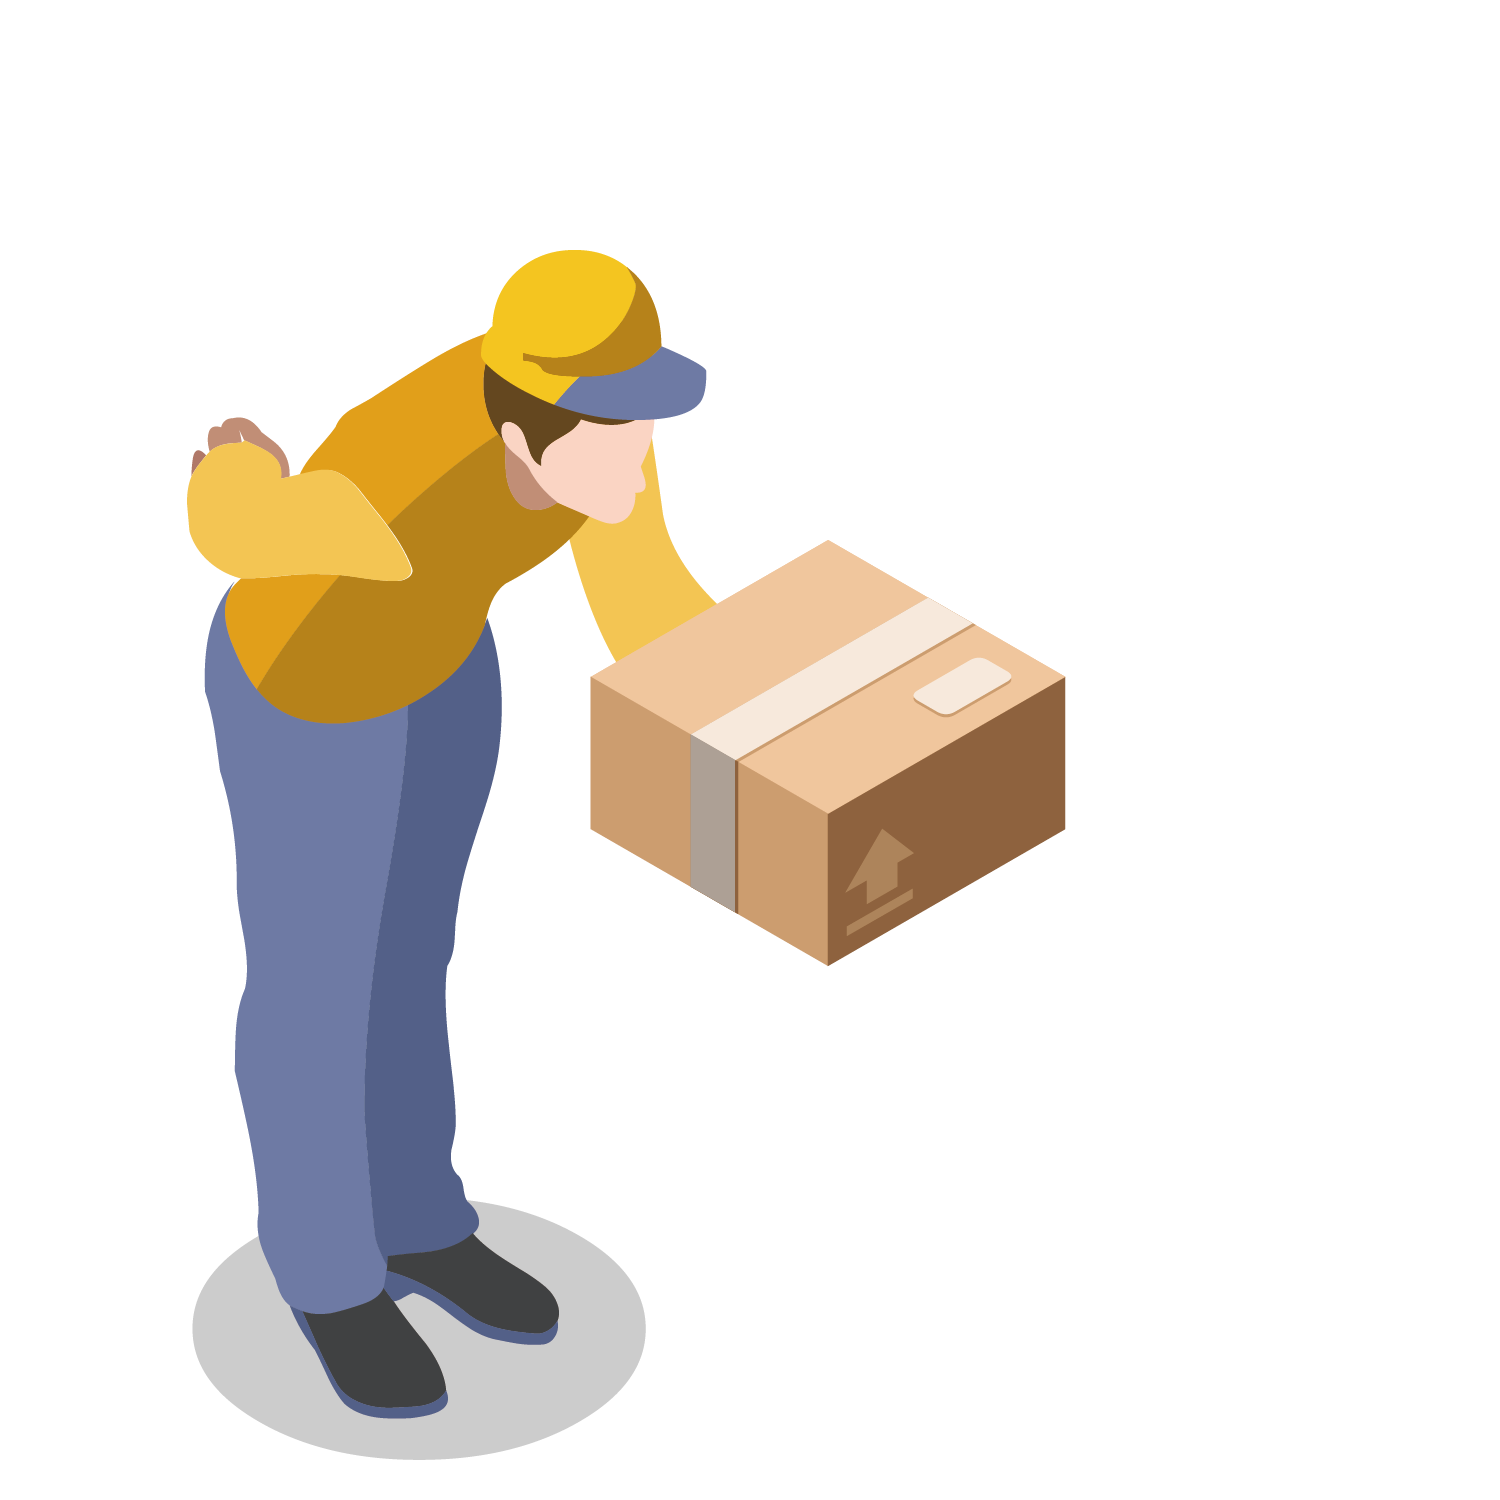 Delivery clipart package delivery. Parcel clip arts for